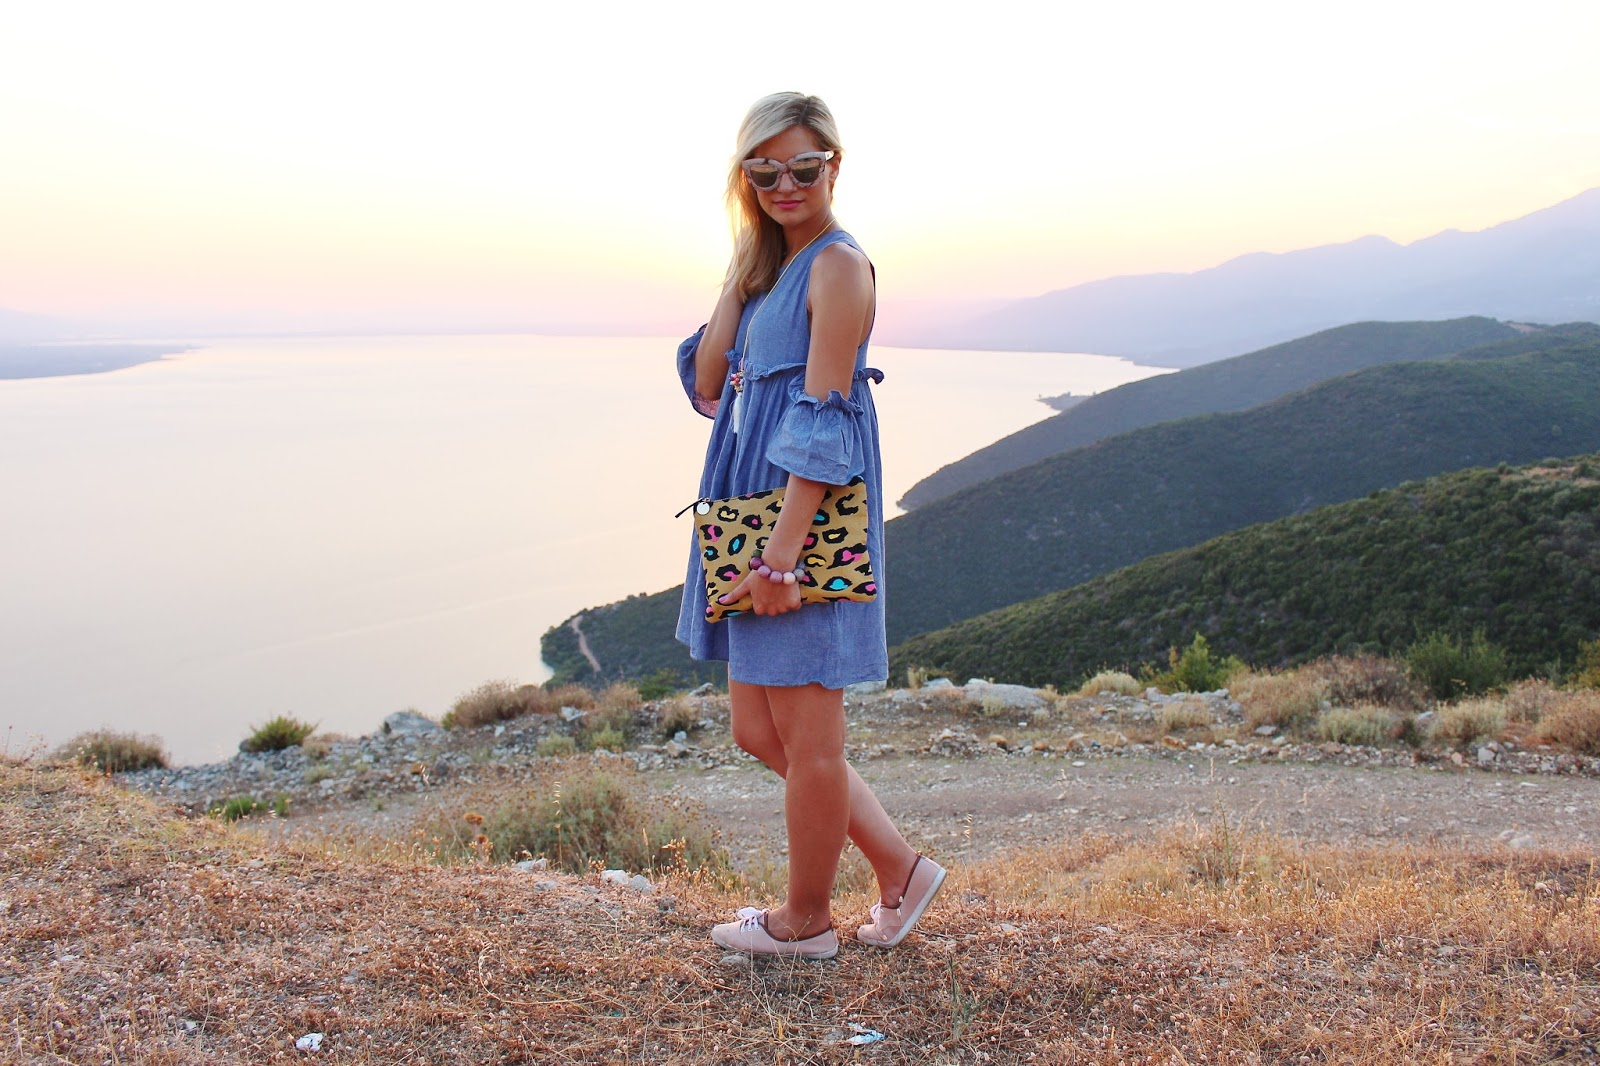 bijuleni- Boohoo off the shoulder dress with sneakers. Sunset in Greece.